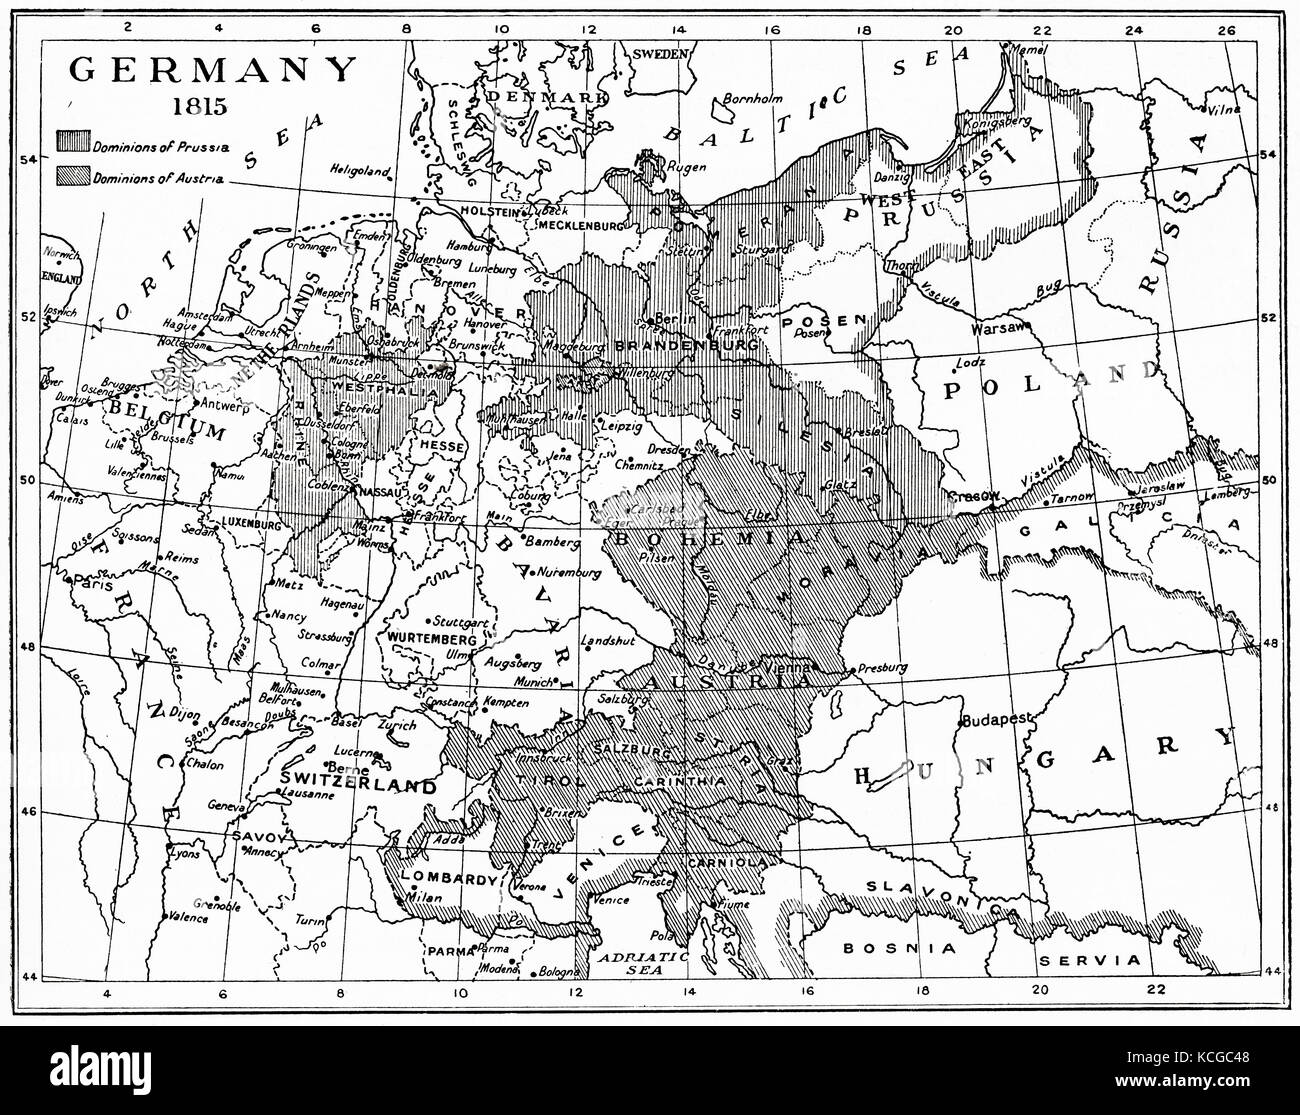 Congress of vienna stock photos congress of vienna stock images map of germany in 1815 after the congress of vienna from hutchinsons history of the sciox Choice Image